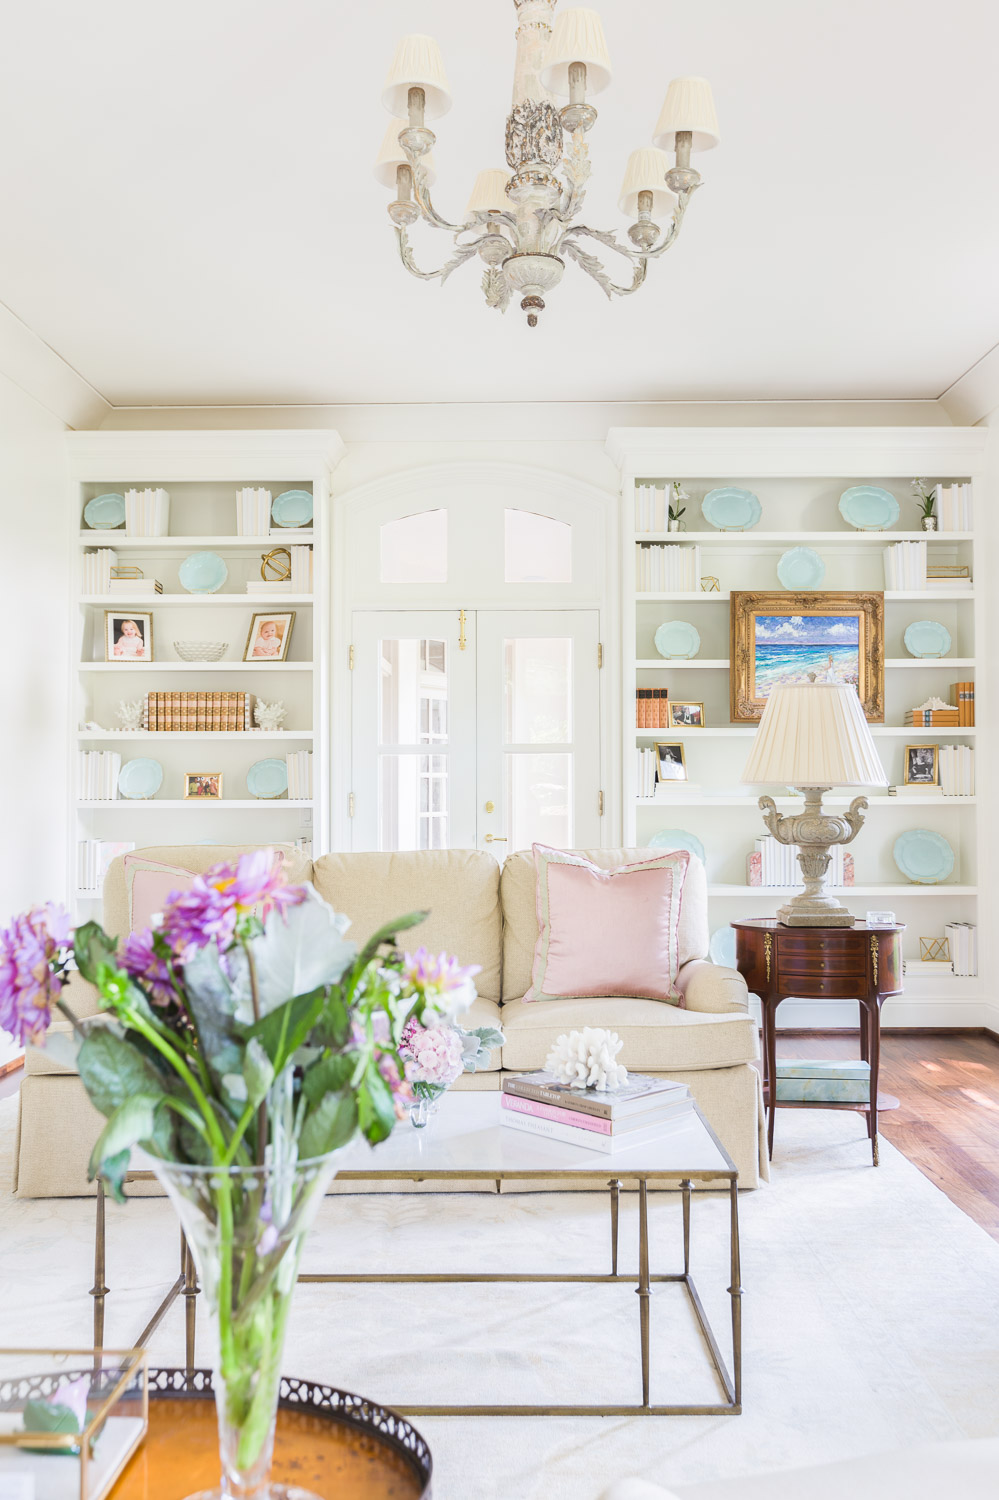 ©AlyssaRosenheck2015 with Katie Gibson Interiors